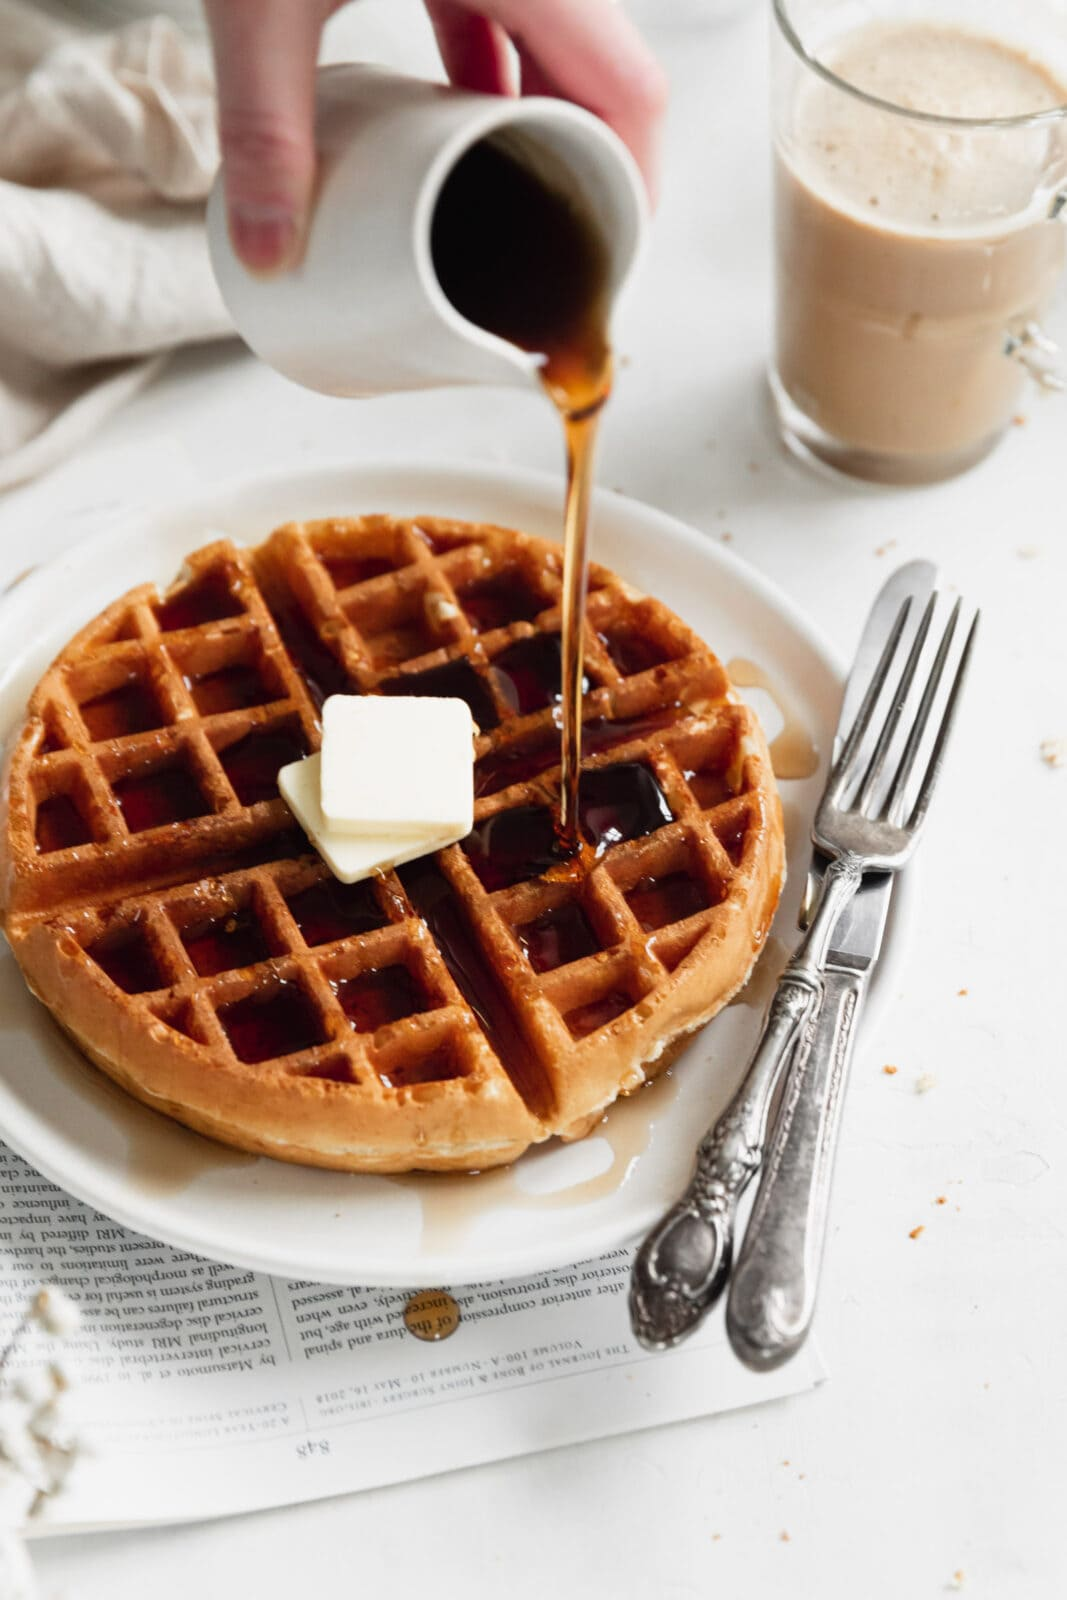 fluffy belgian waffles with syrup